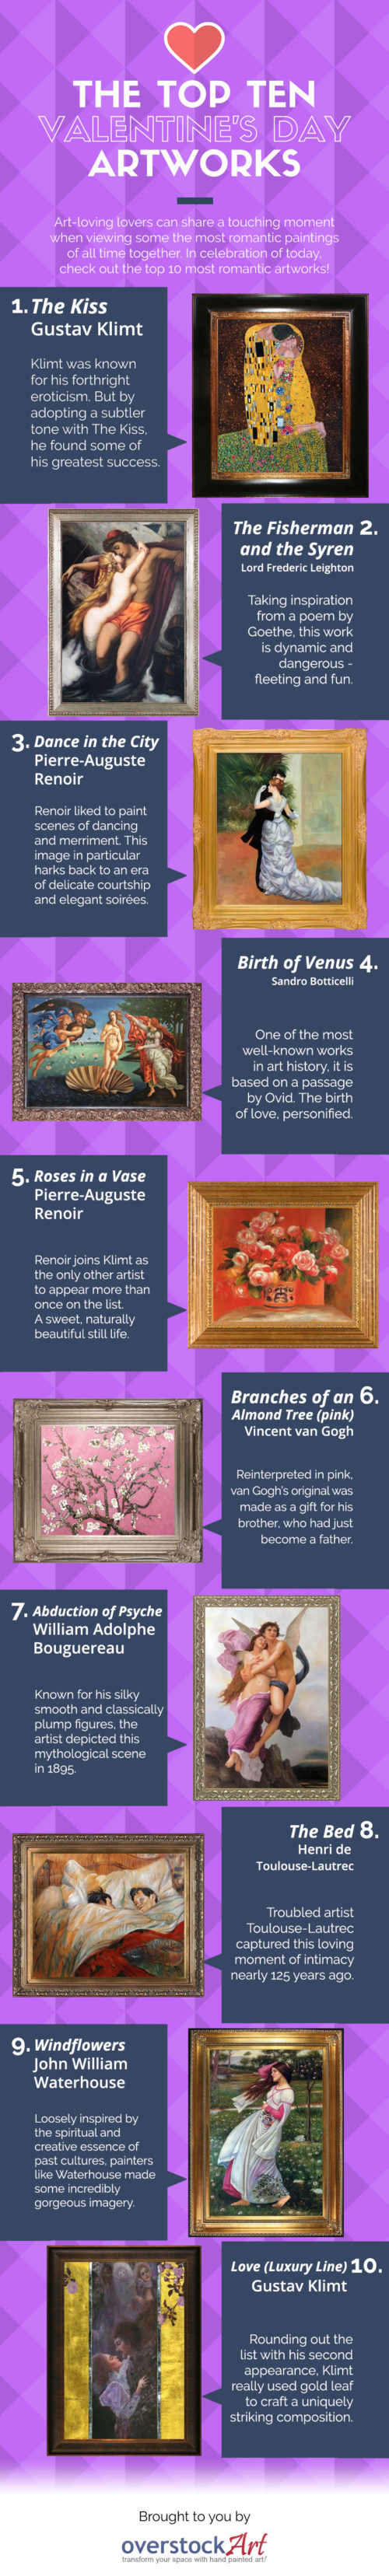 The Top Ten Paintings for Valentine's Day 2017 Infographic